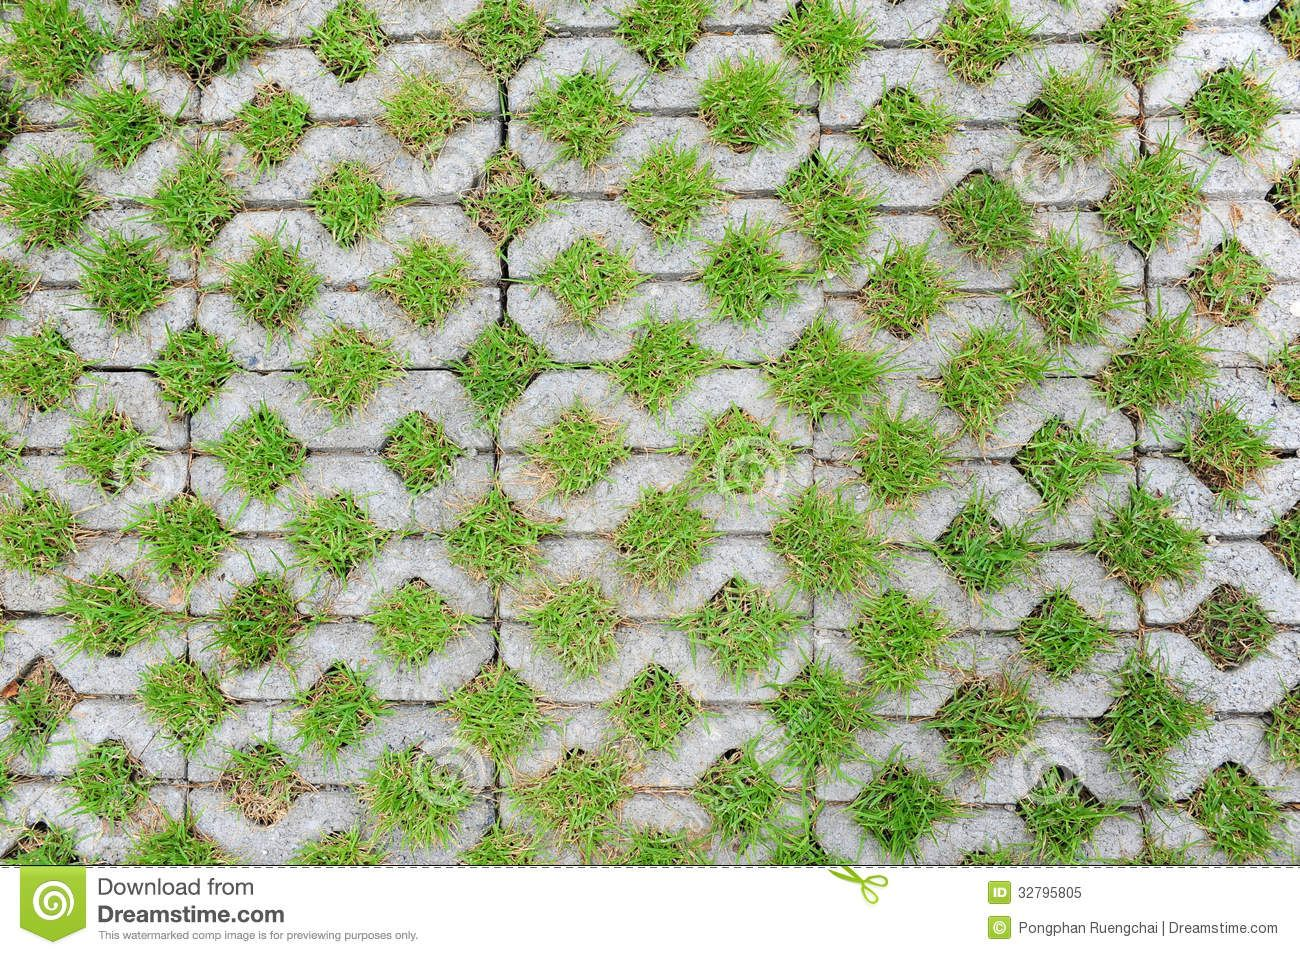 Grass pavers texture images galleries for Green pavers